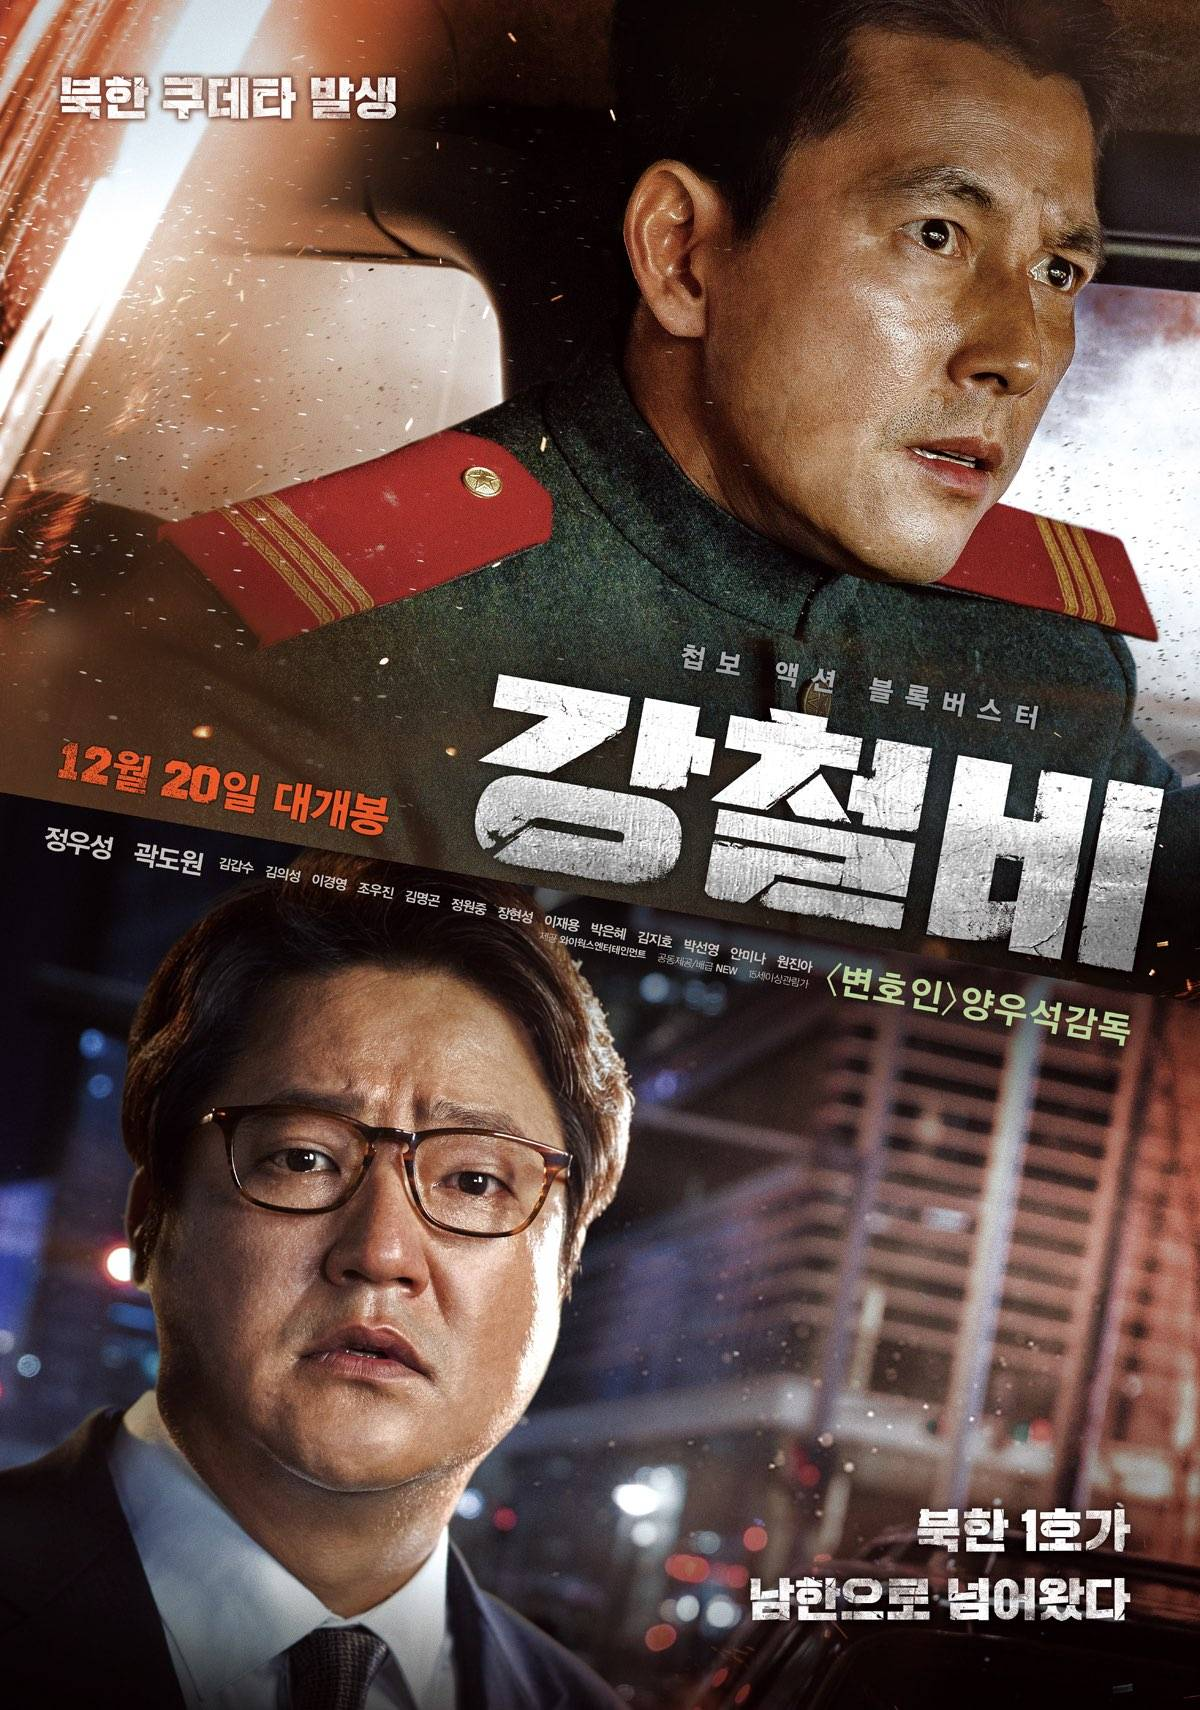 [Photos] Added new posters and stills for the Korean movie